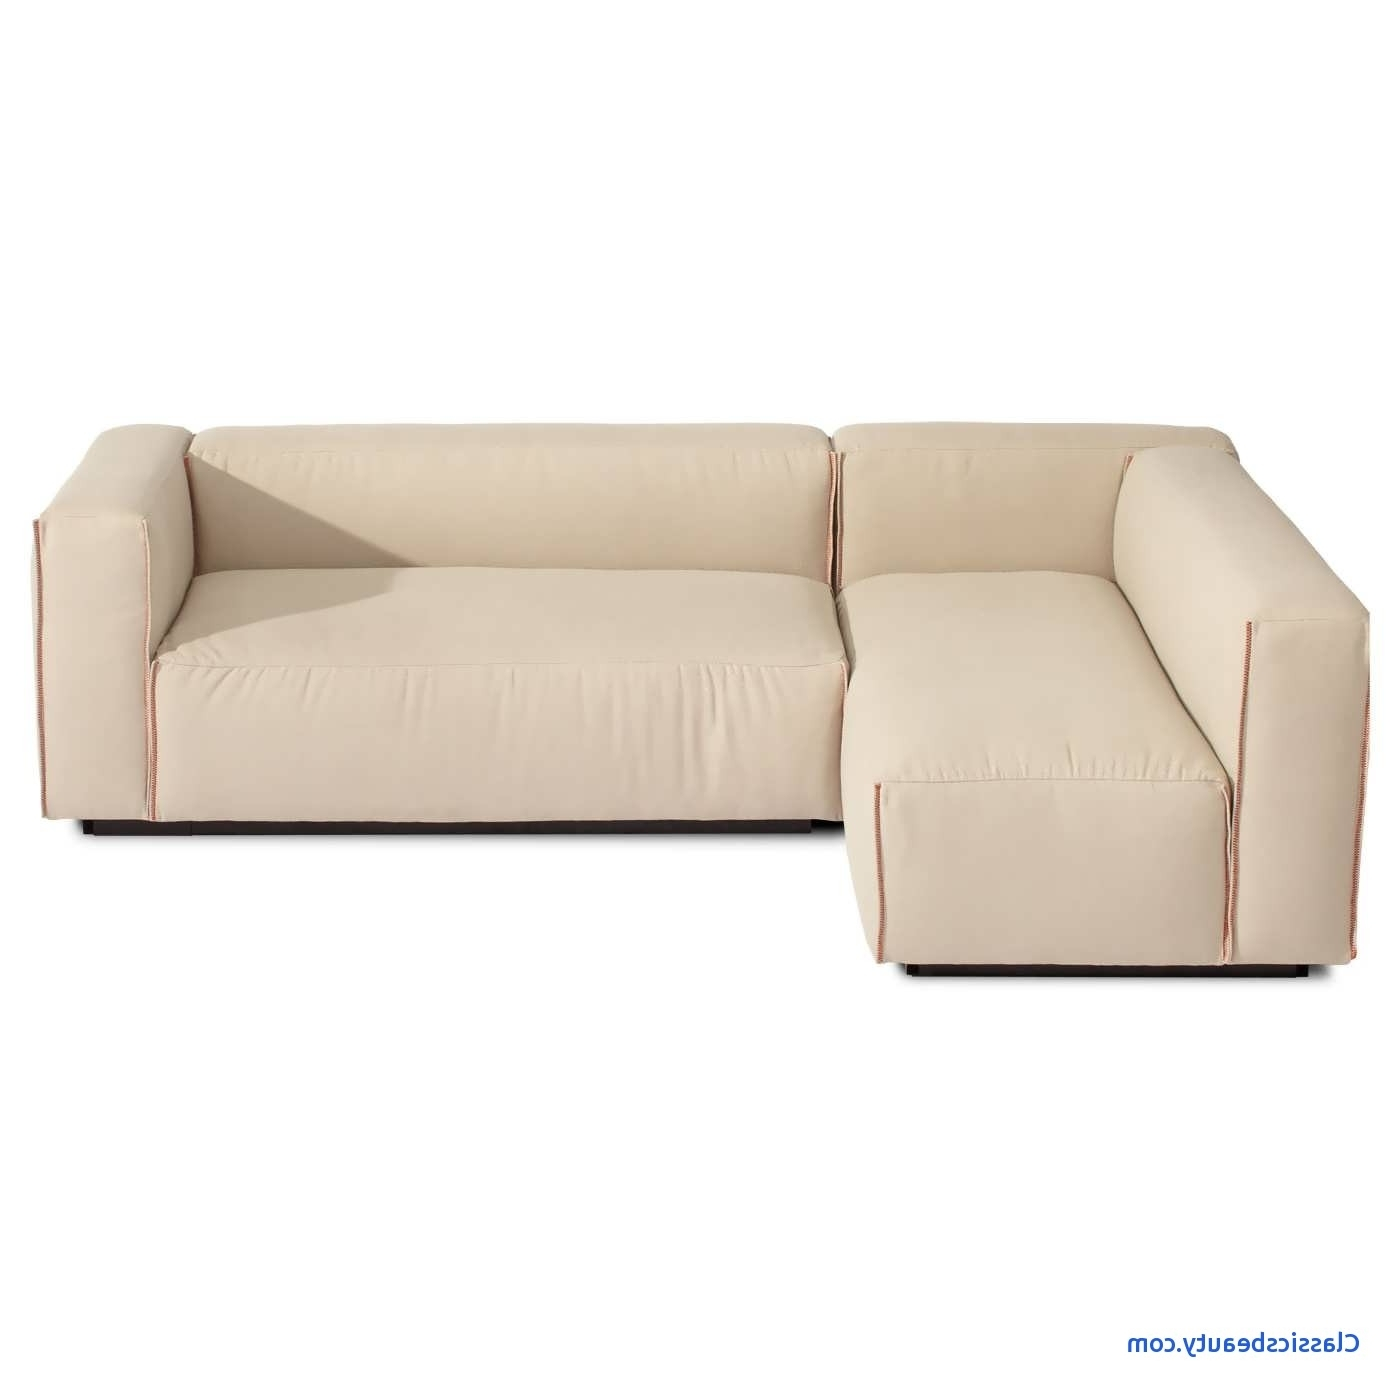 Small Sofas Elegant Sofa Corner Sofa Sectional Sleeper Sofa Chaise With Well Known Small Chaise Sofas (View 11 of 15)